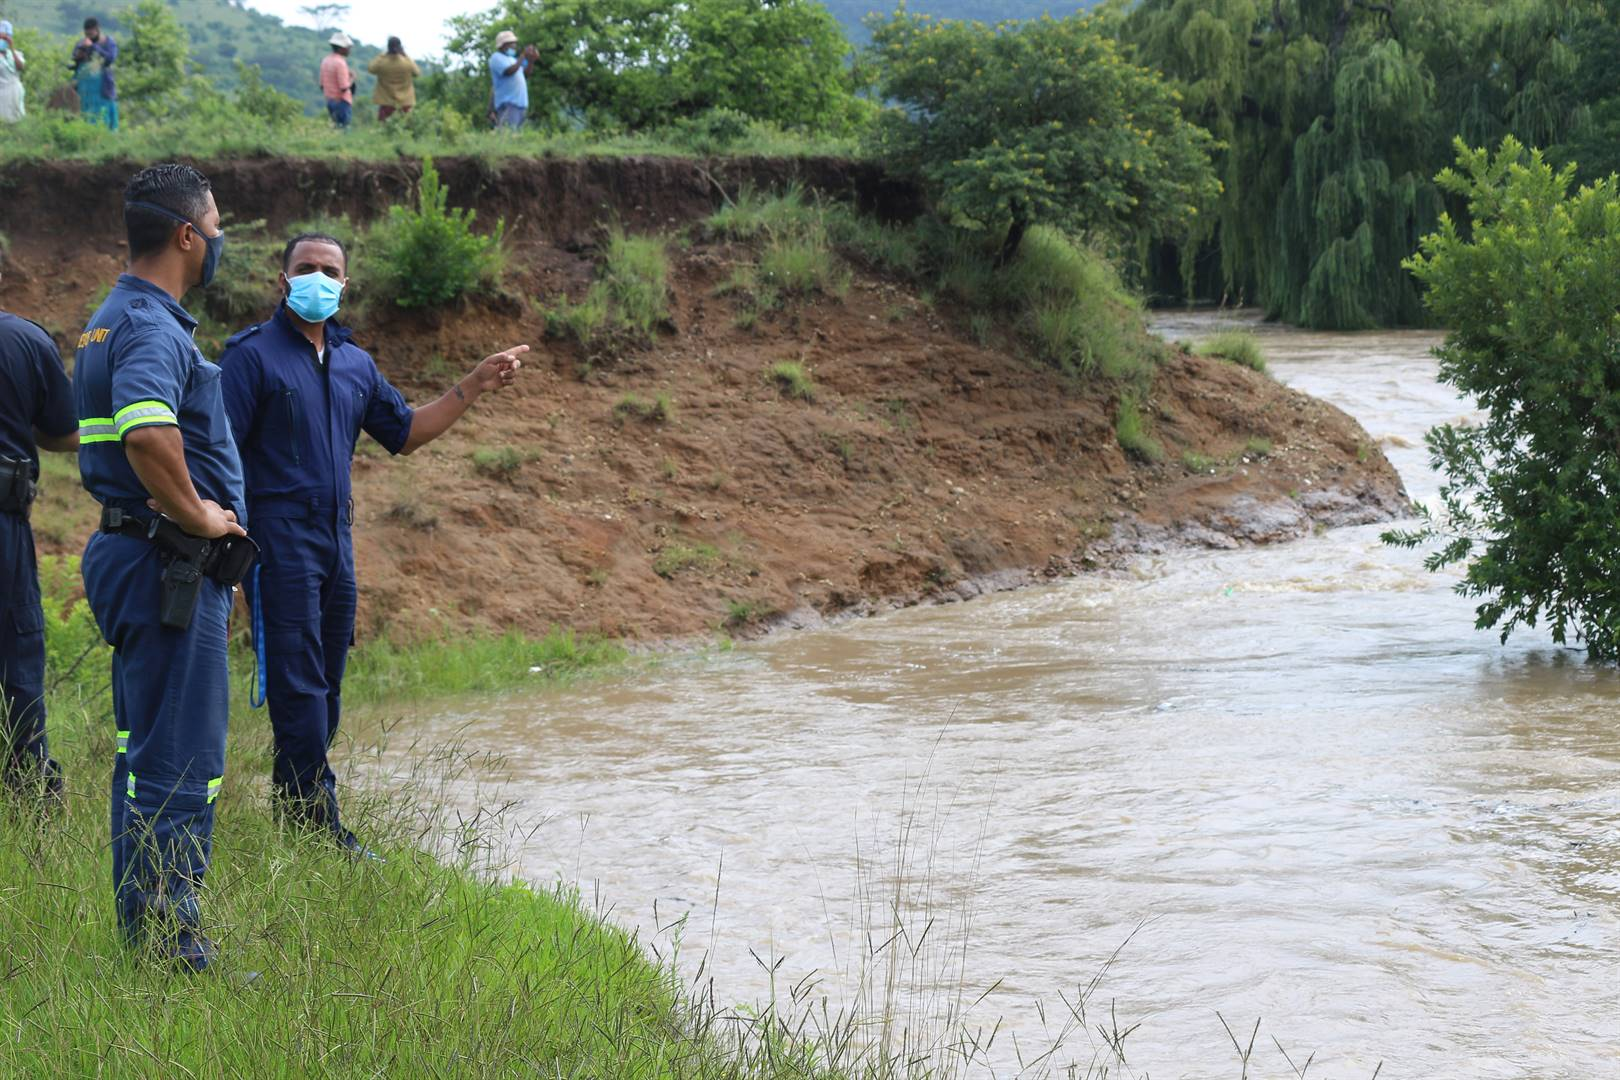 A two day search for Sfiso Majola, 16 year-old, has been temporarily called off till Monday due to dangerous water levels of the Umtshezi river in the Nhlalakahle area, Estcourt. PHOTO: CLAUDINE SENEKAL/LADYSMITH HERALD